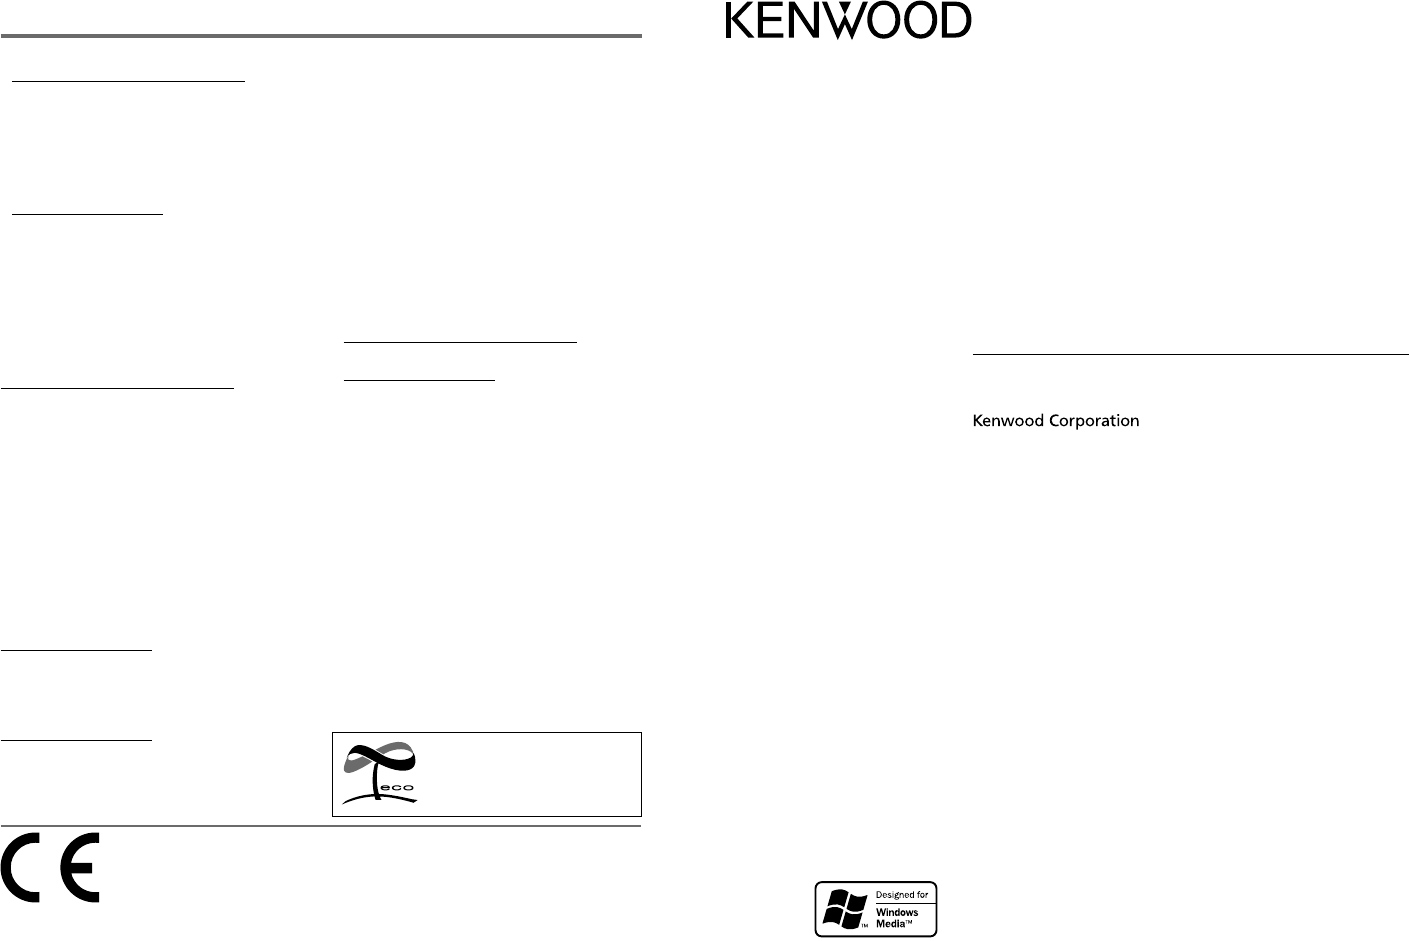 9f1ce1da c45f 4ce9 b247 6e85c2df45fe bg1 kenwood car stereo system kdc mp249 user guide manualsonline com kenwood kdc-x998 wiring diagram at suagrazia.org